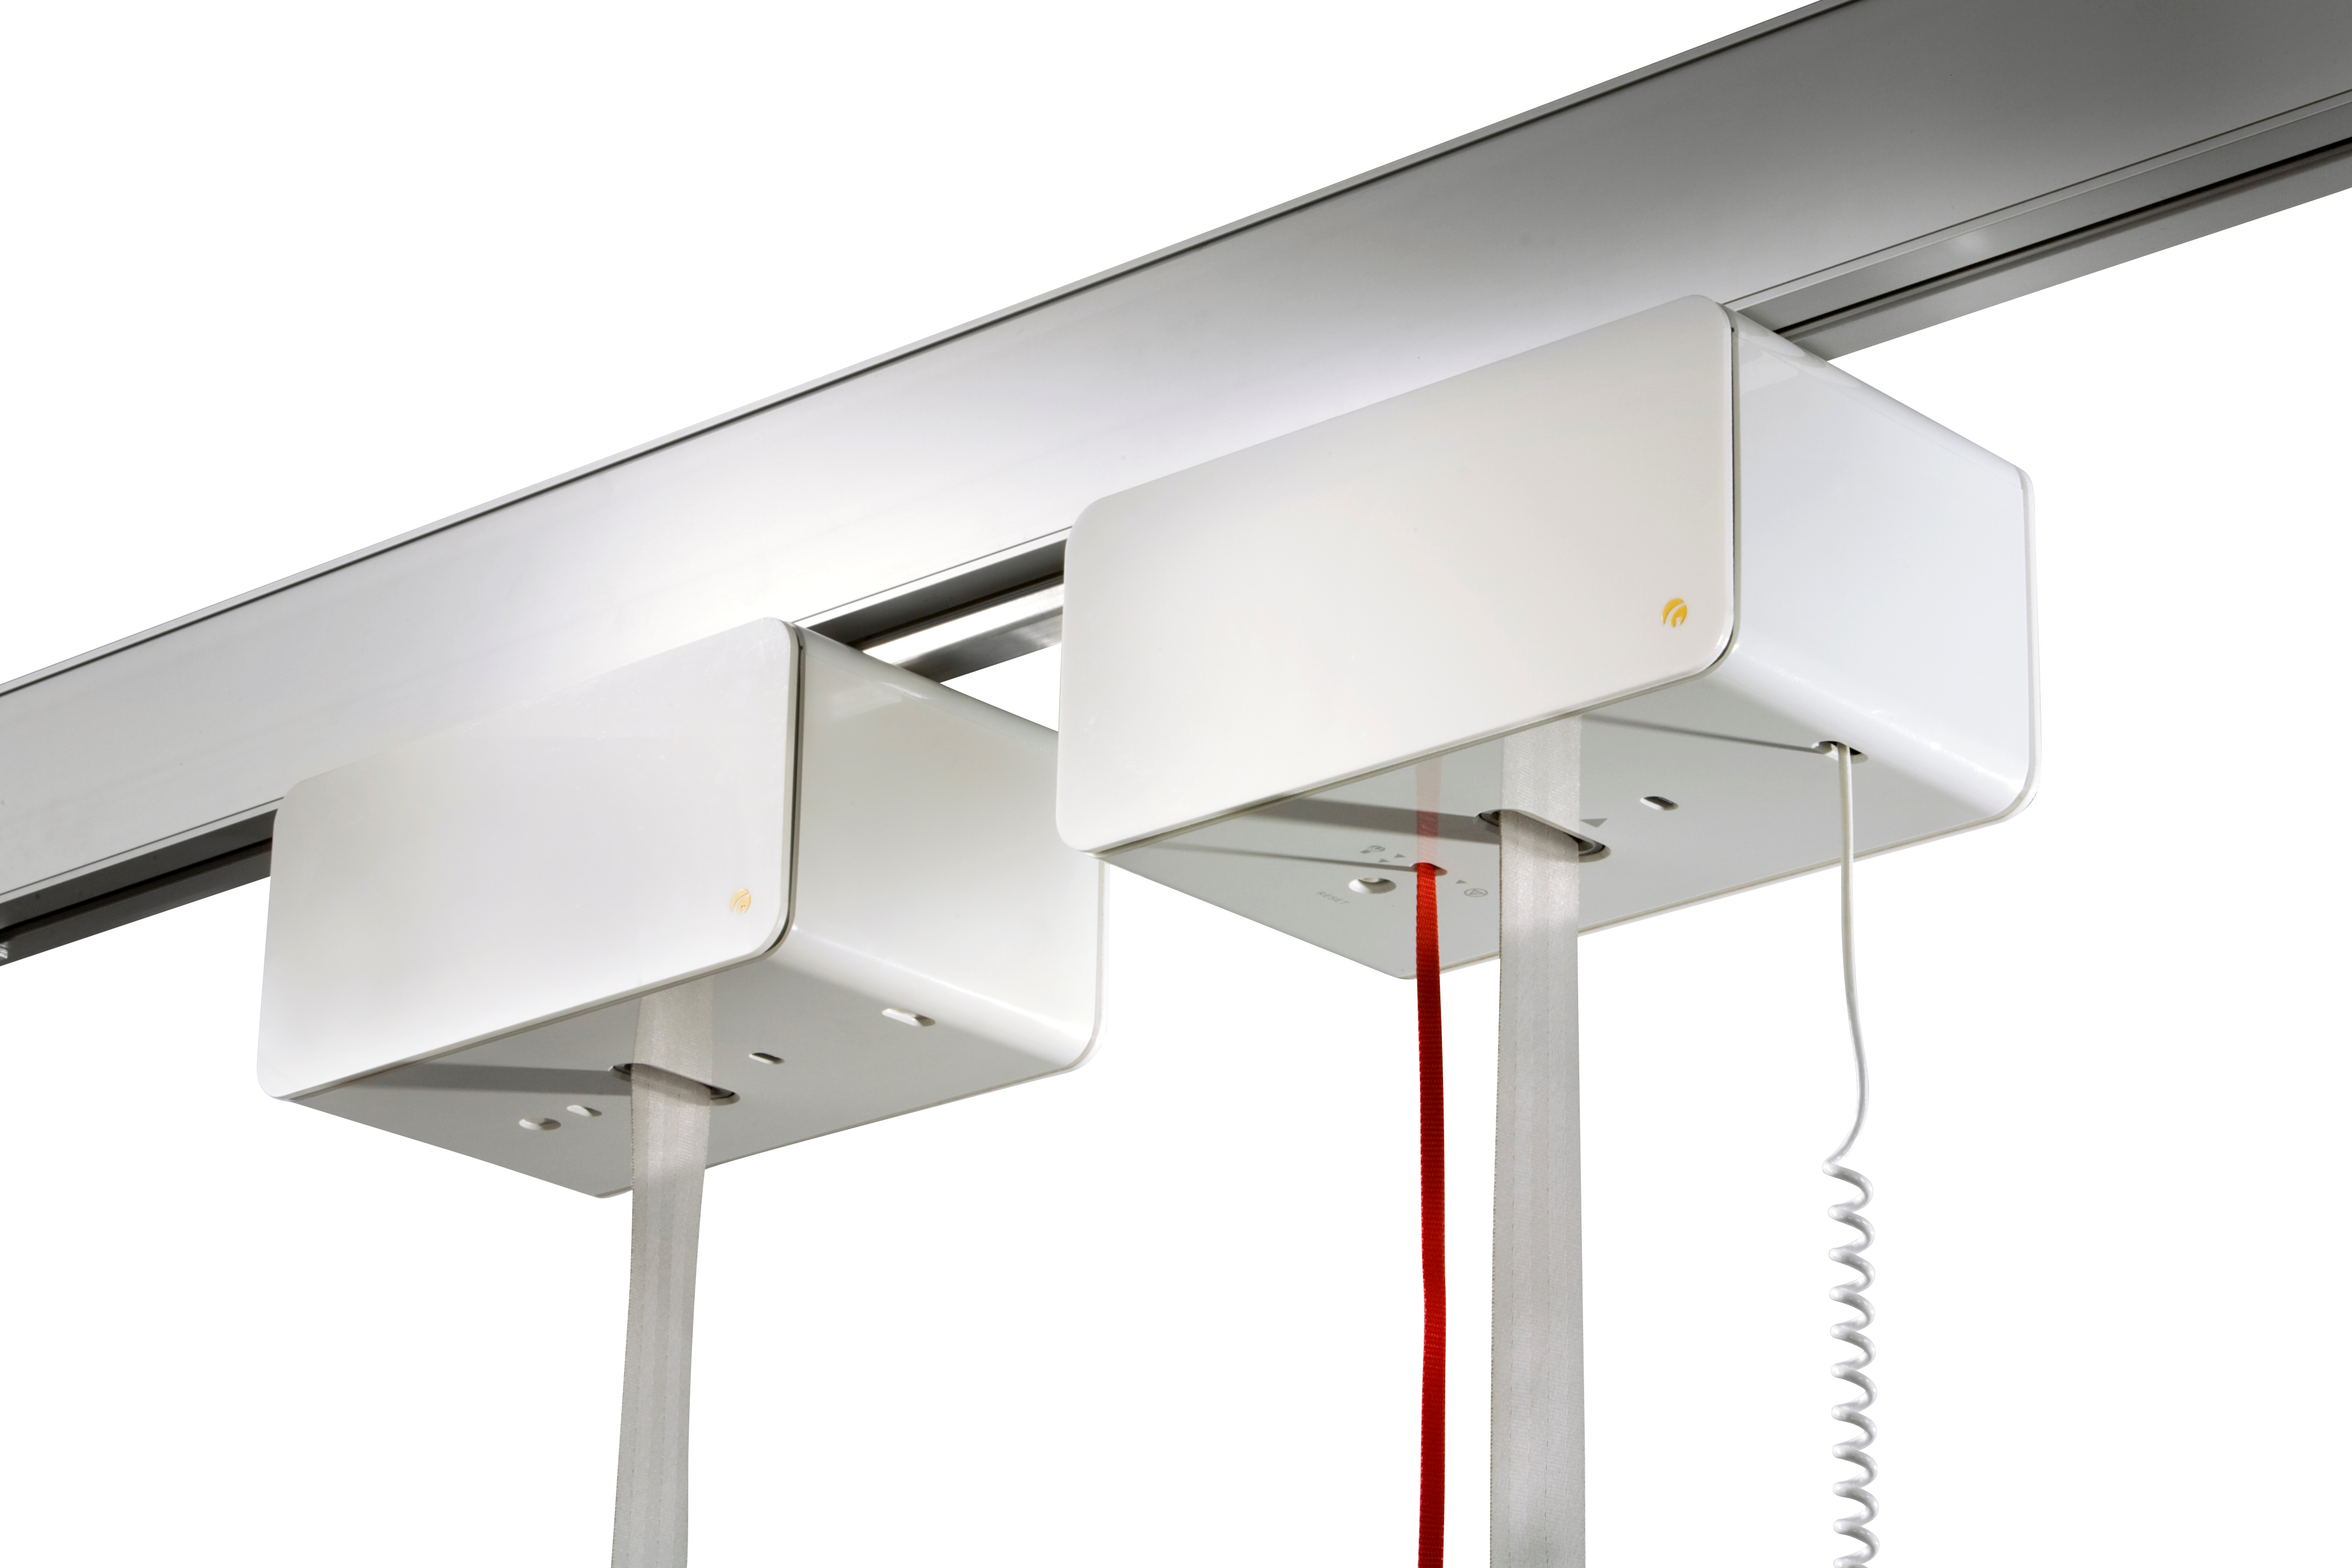 Heavy-duty ceiling hoist - lifting capacity up to 500 kg - for lifting and moving bariatric users